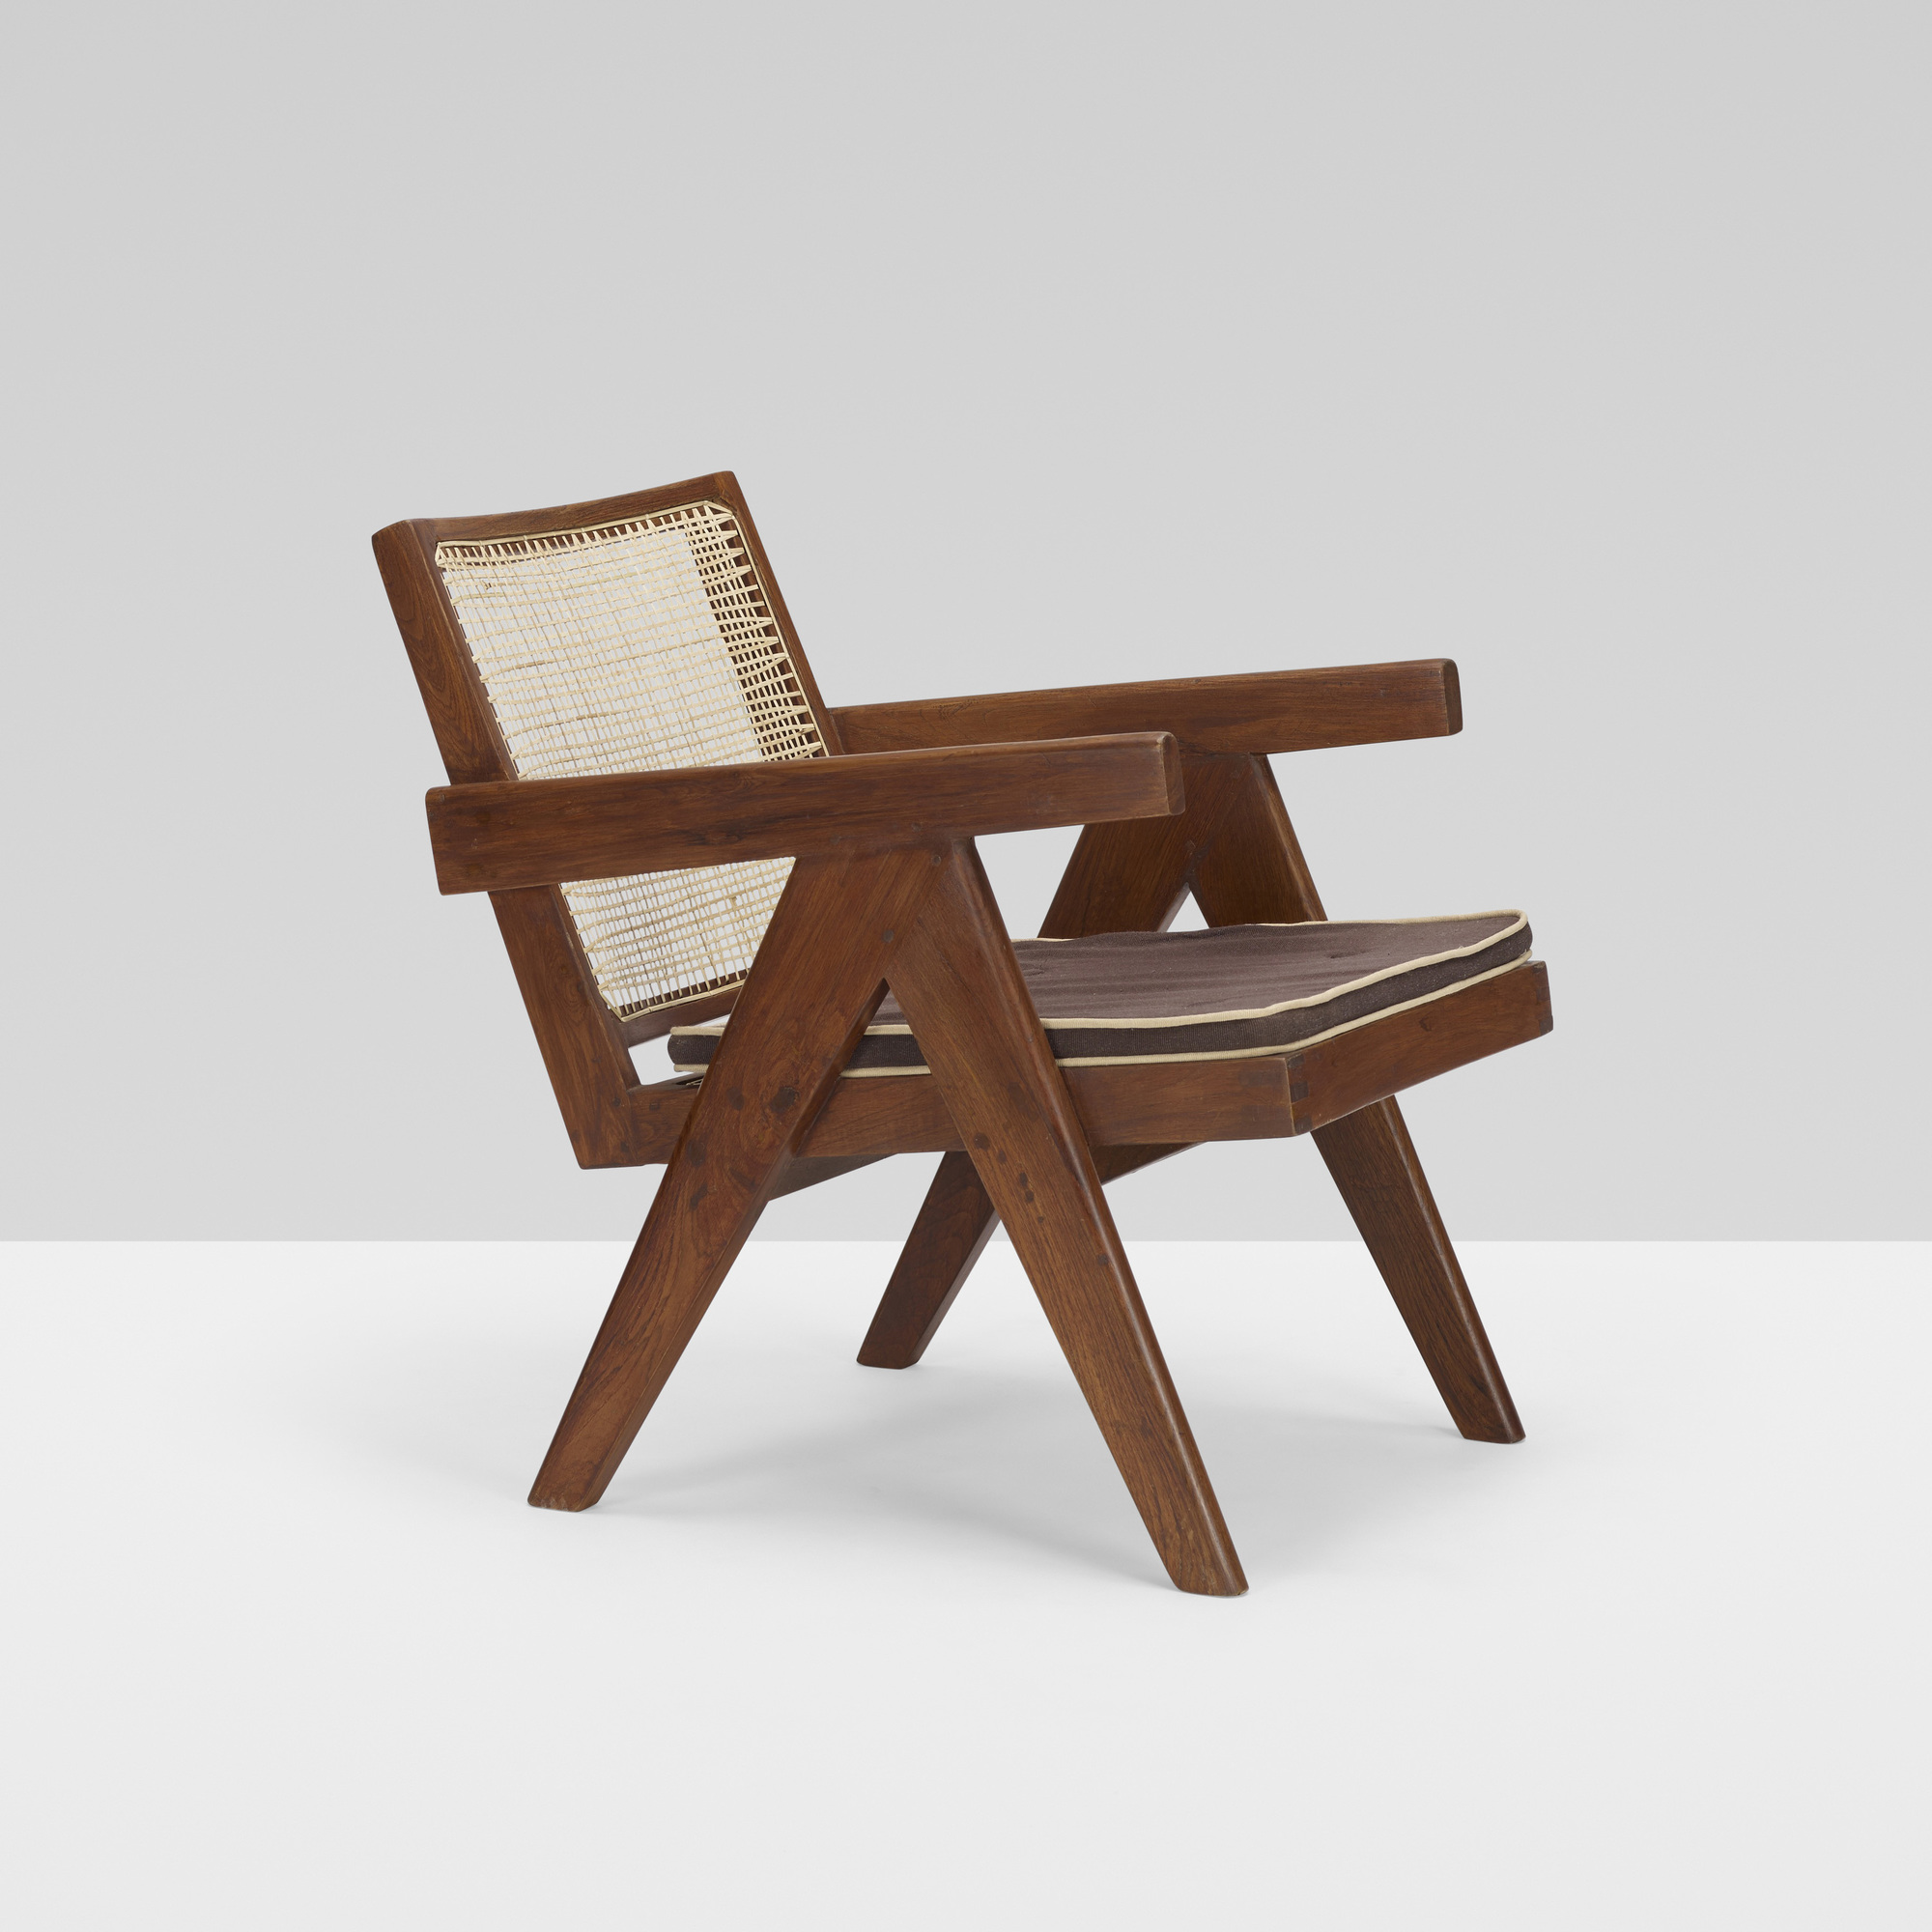 103: Pierre Jeanneret / Easy armchair from Chandigarh (2 of 4)